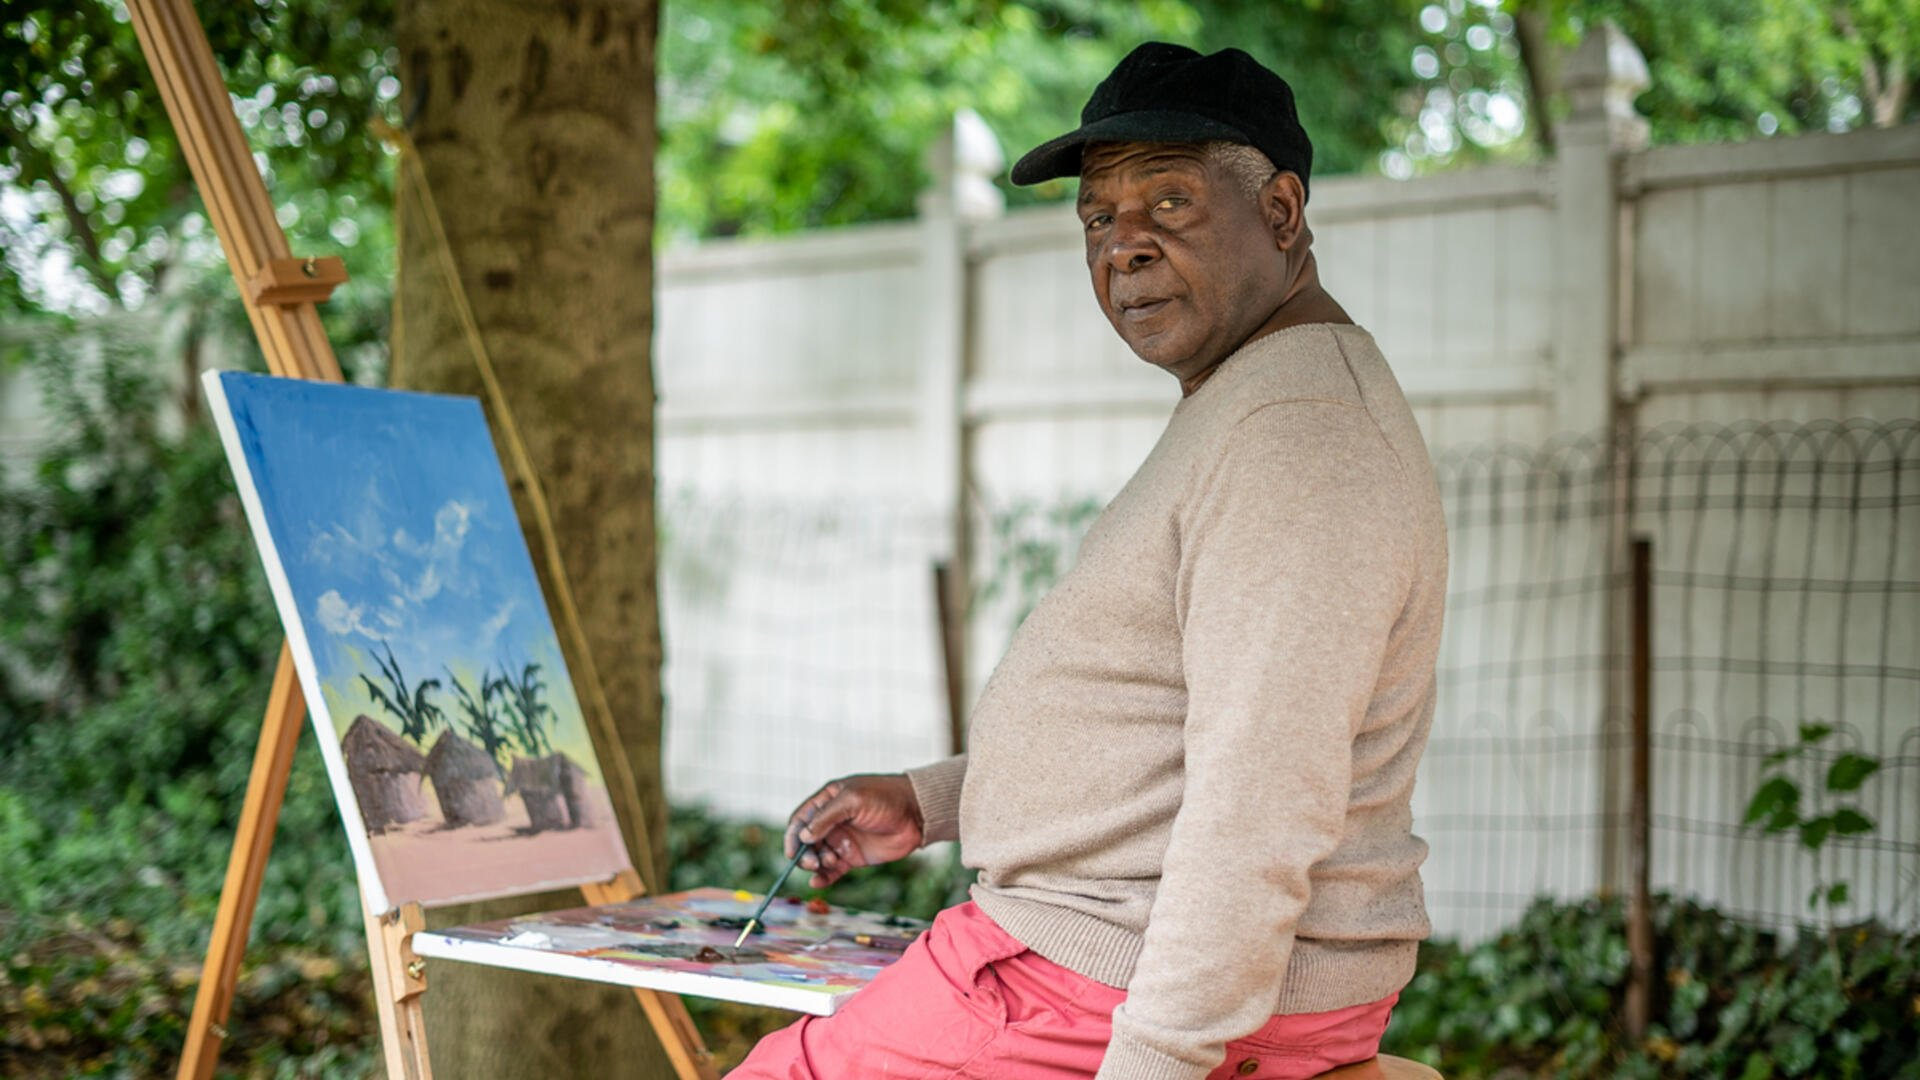 Congolese artist Muyambo Marcel Chishimbasite outside at his easel painting a landscape